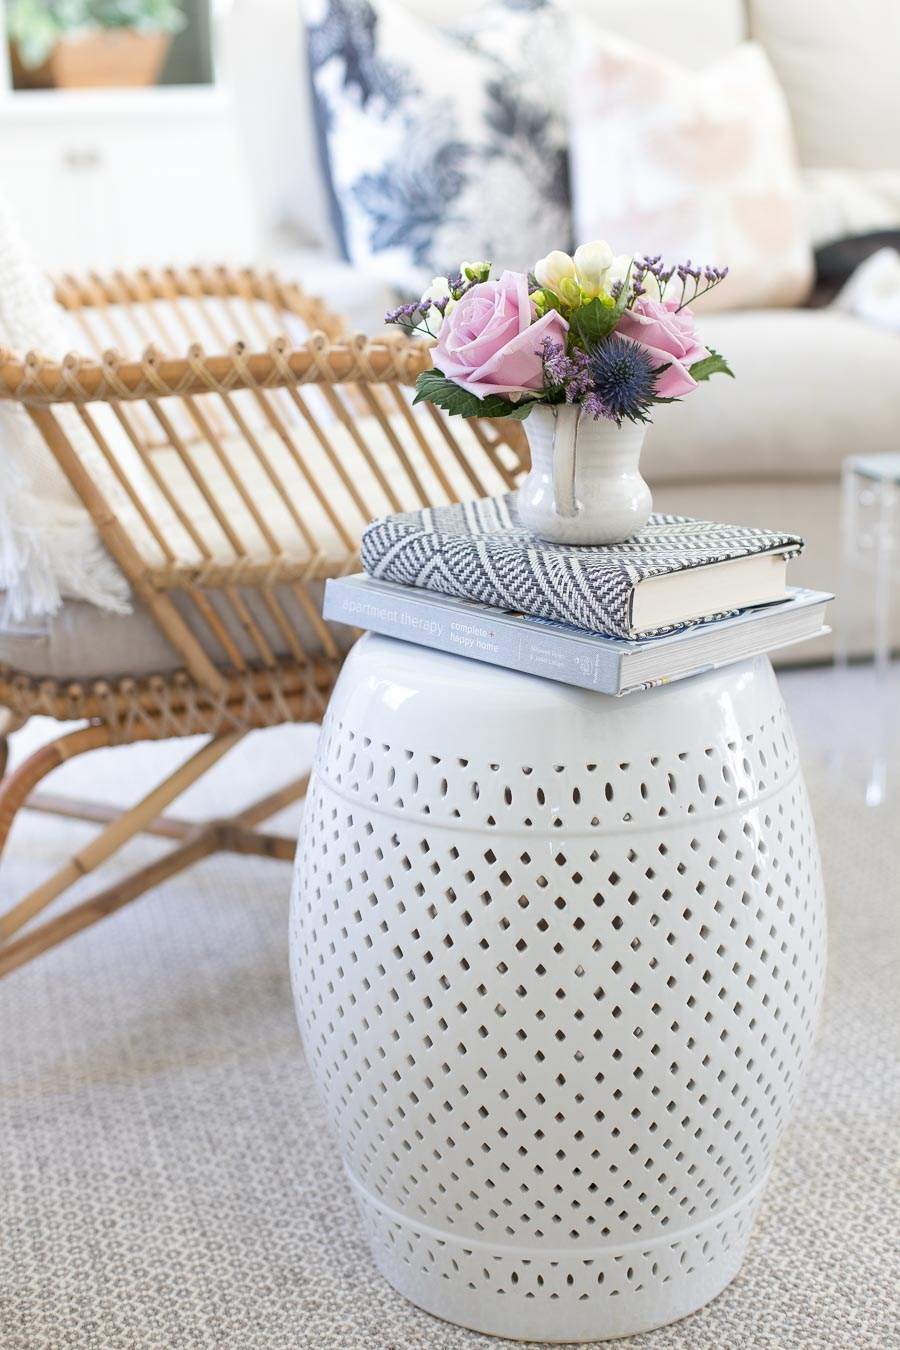 The prettiest white garden stool - I love this as a living room side table!